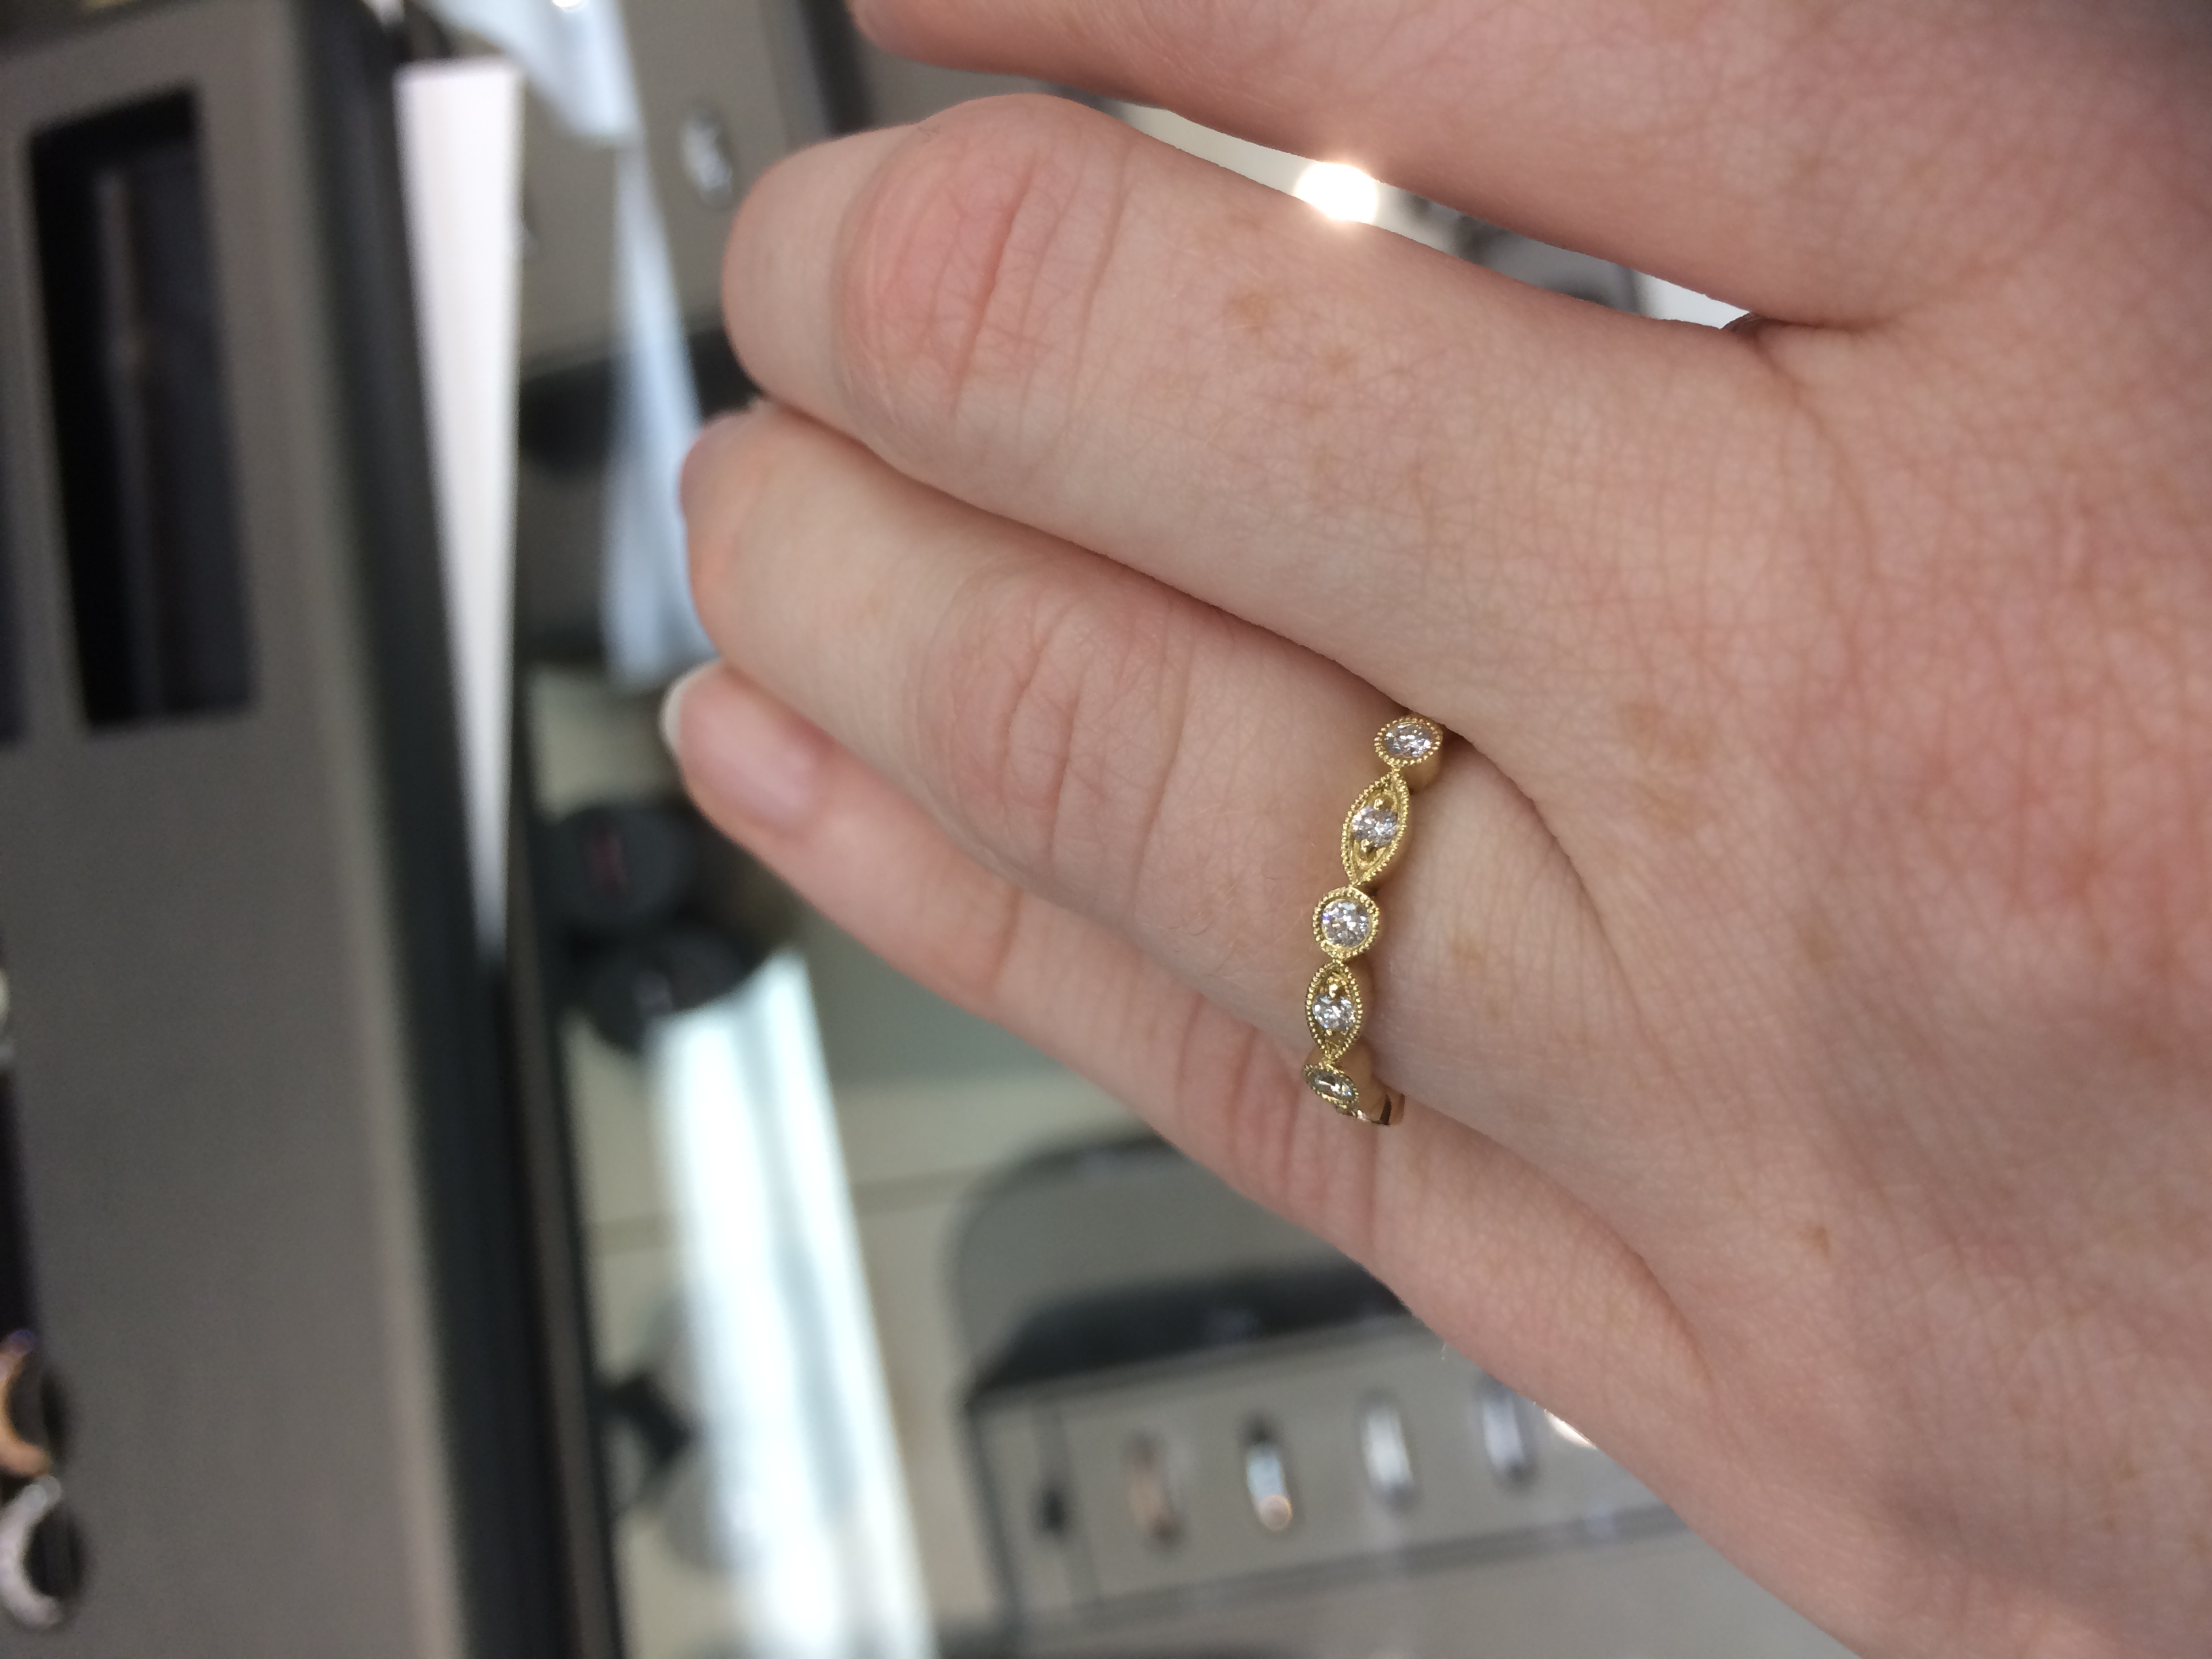 buy rose gold engagement ringwedding band from two different stores help wedding ring stores I can t decide whether or not it should go with this e ring from a different store Will the rose golds match Anyone have experience with this SOS